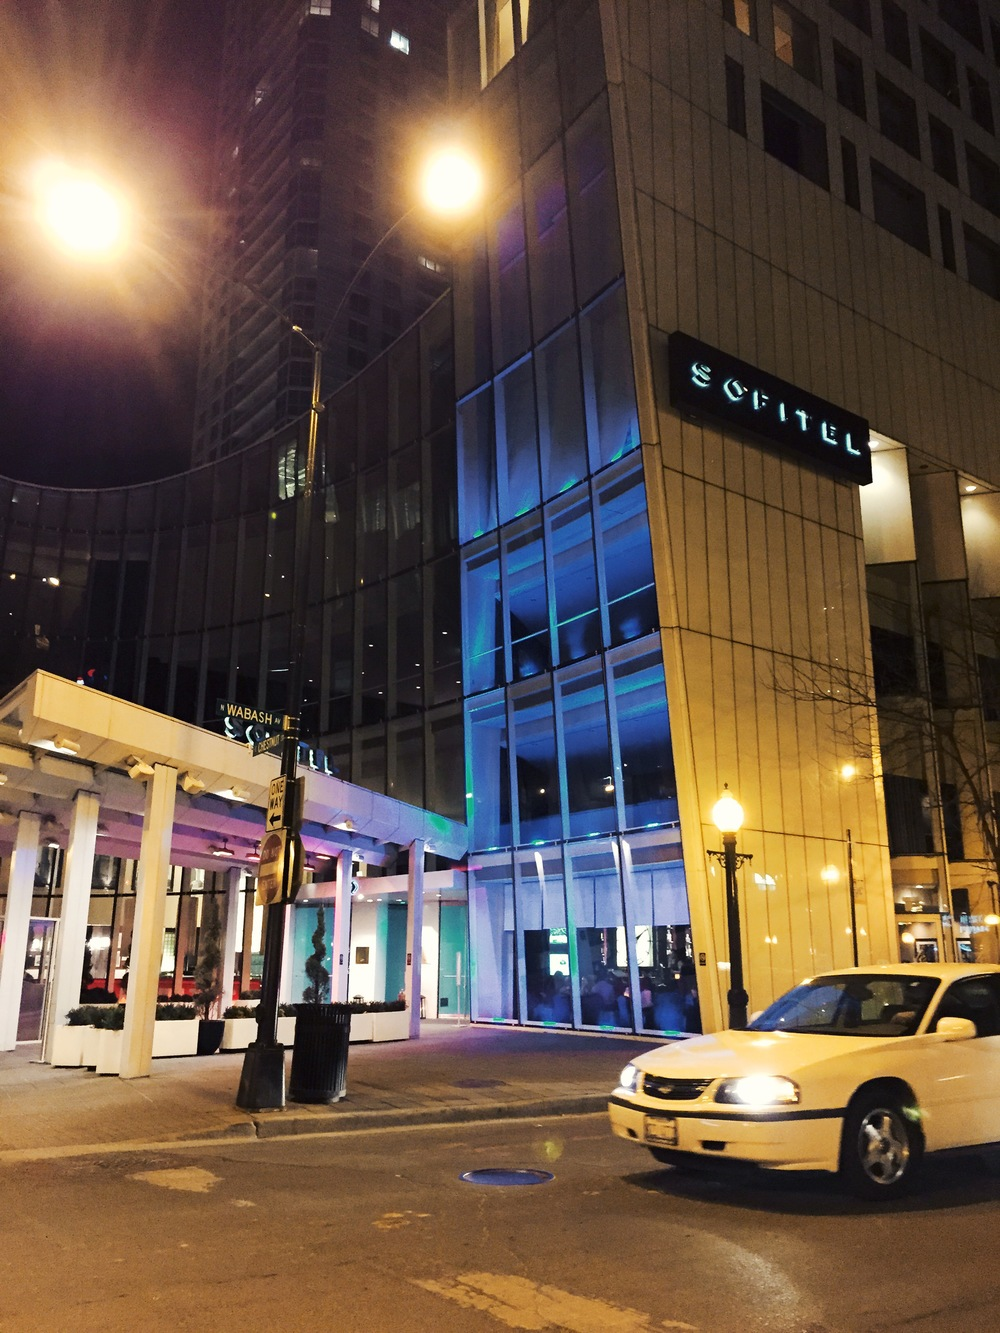 Hotel Sofitel, Wabash and Chestnut